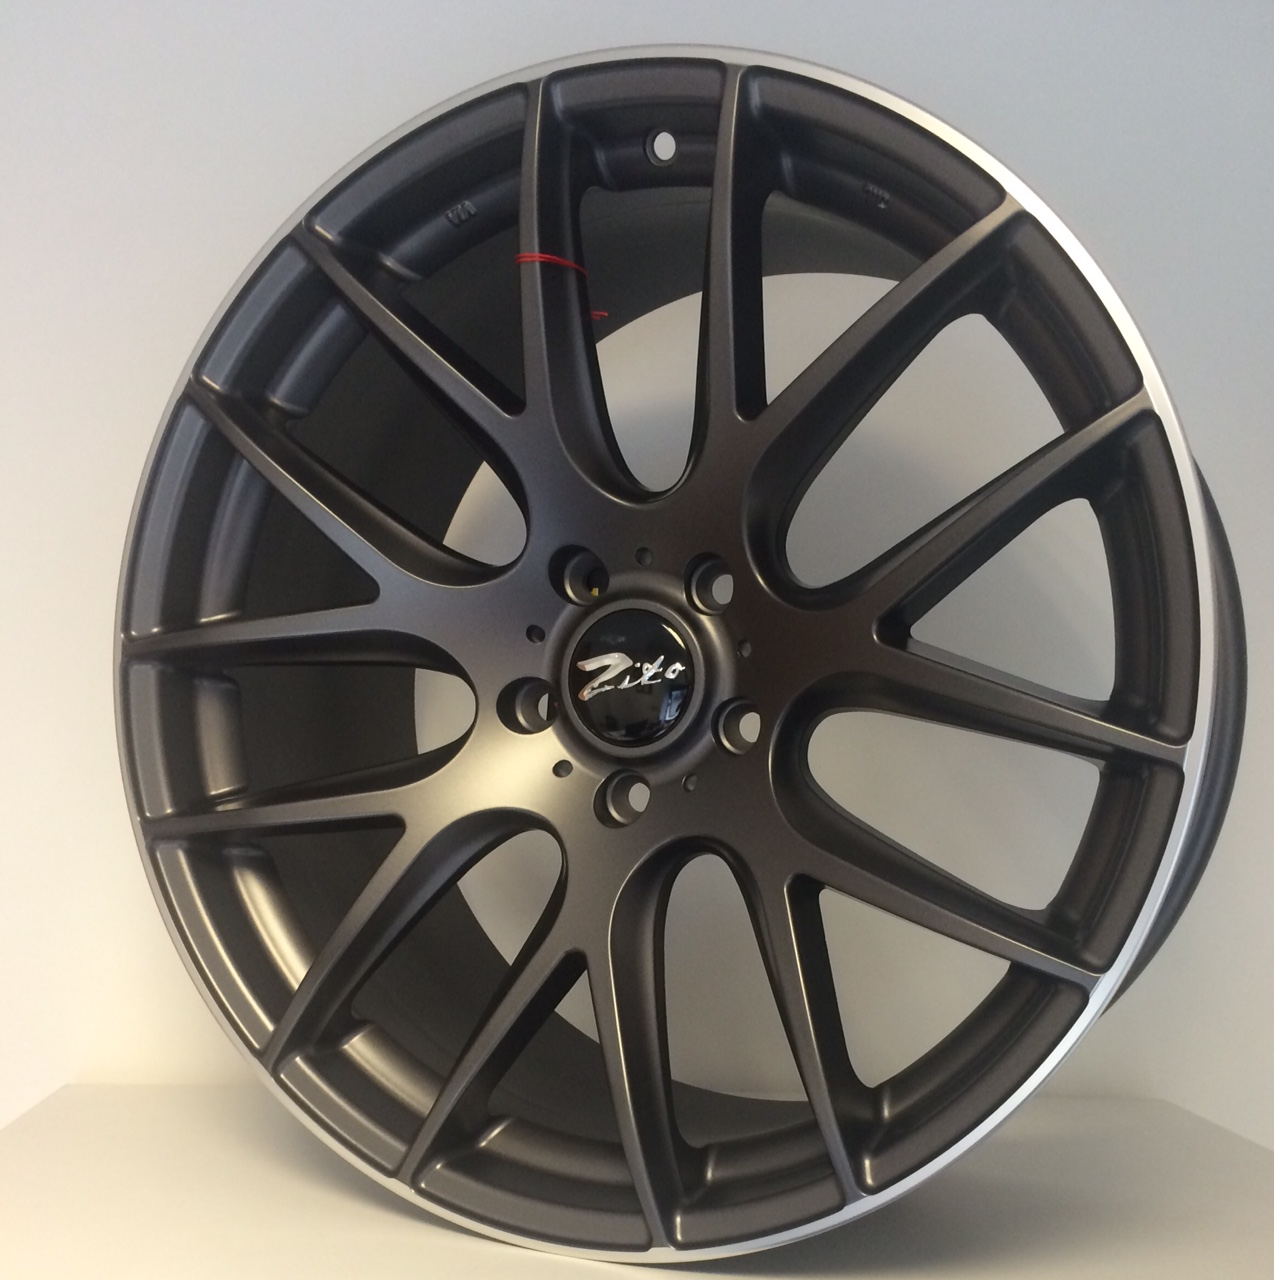 "NEW 20"" ZITO 935 CSL GTS ALLOYS, MATT GUNMETAL WITH POLISHED LIP, DEEPER CONCAVE 9.5"" REARS"